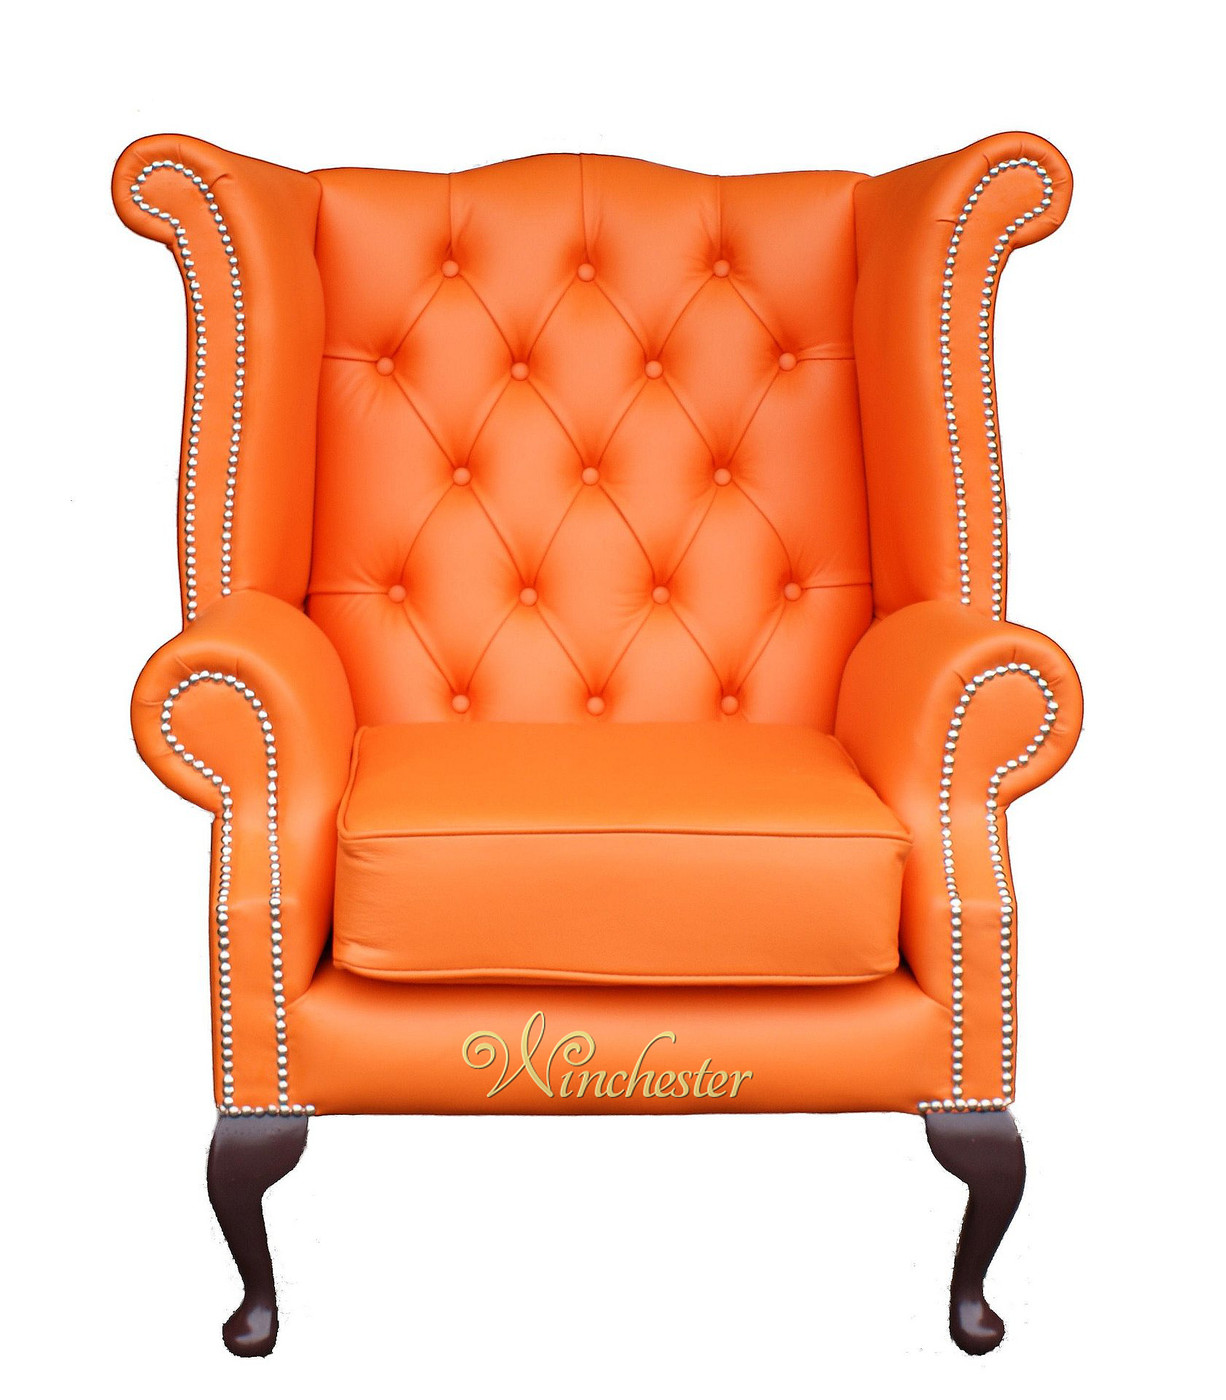 Beau Chesterfield Wing Chair Orange Wc